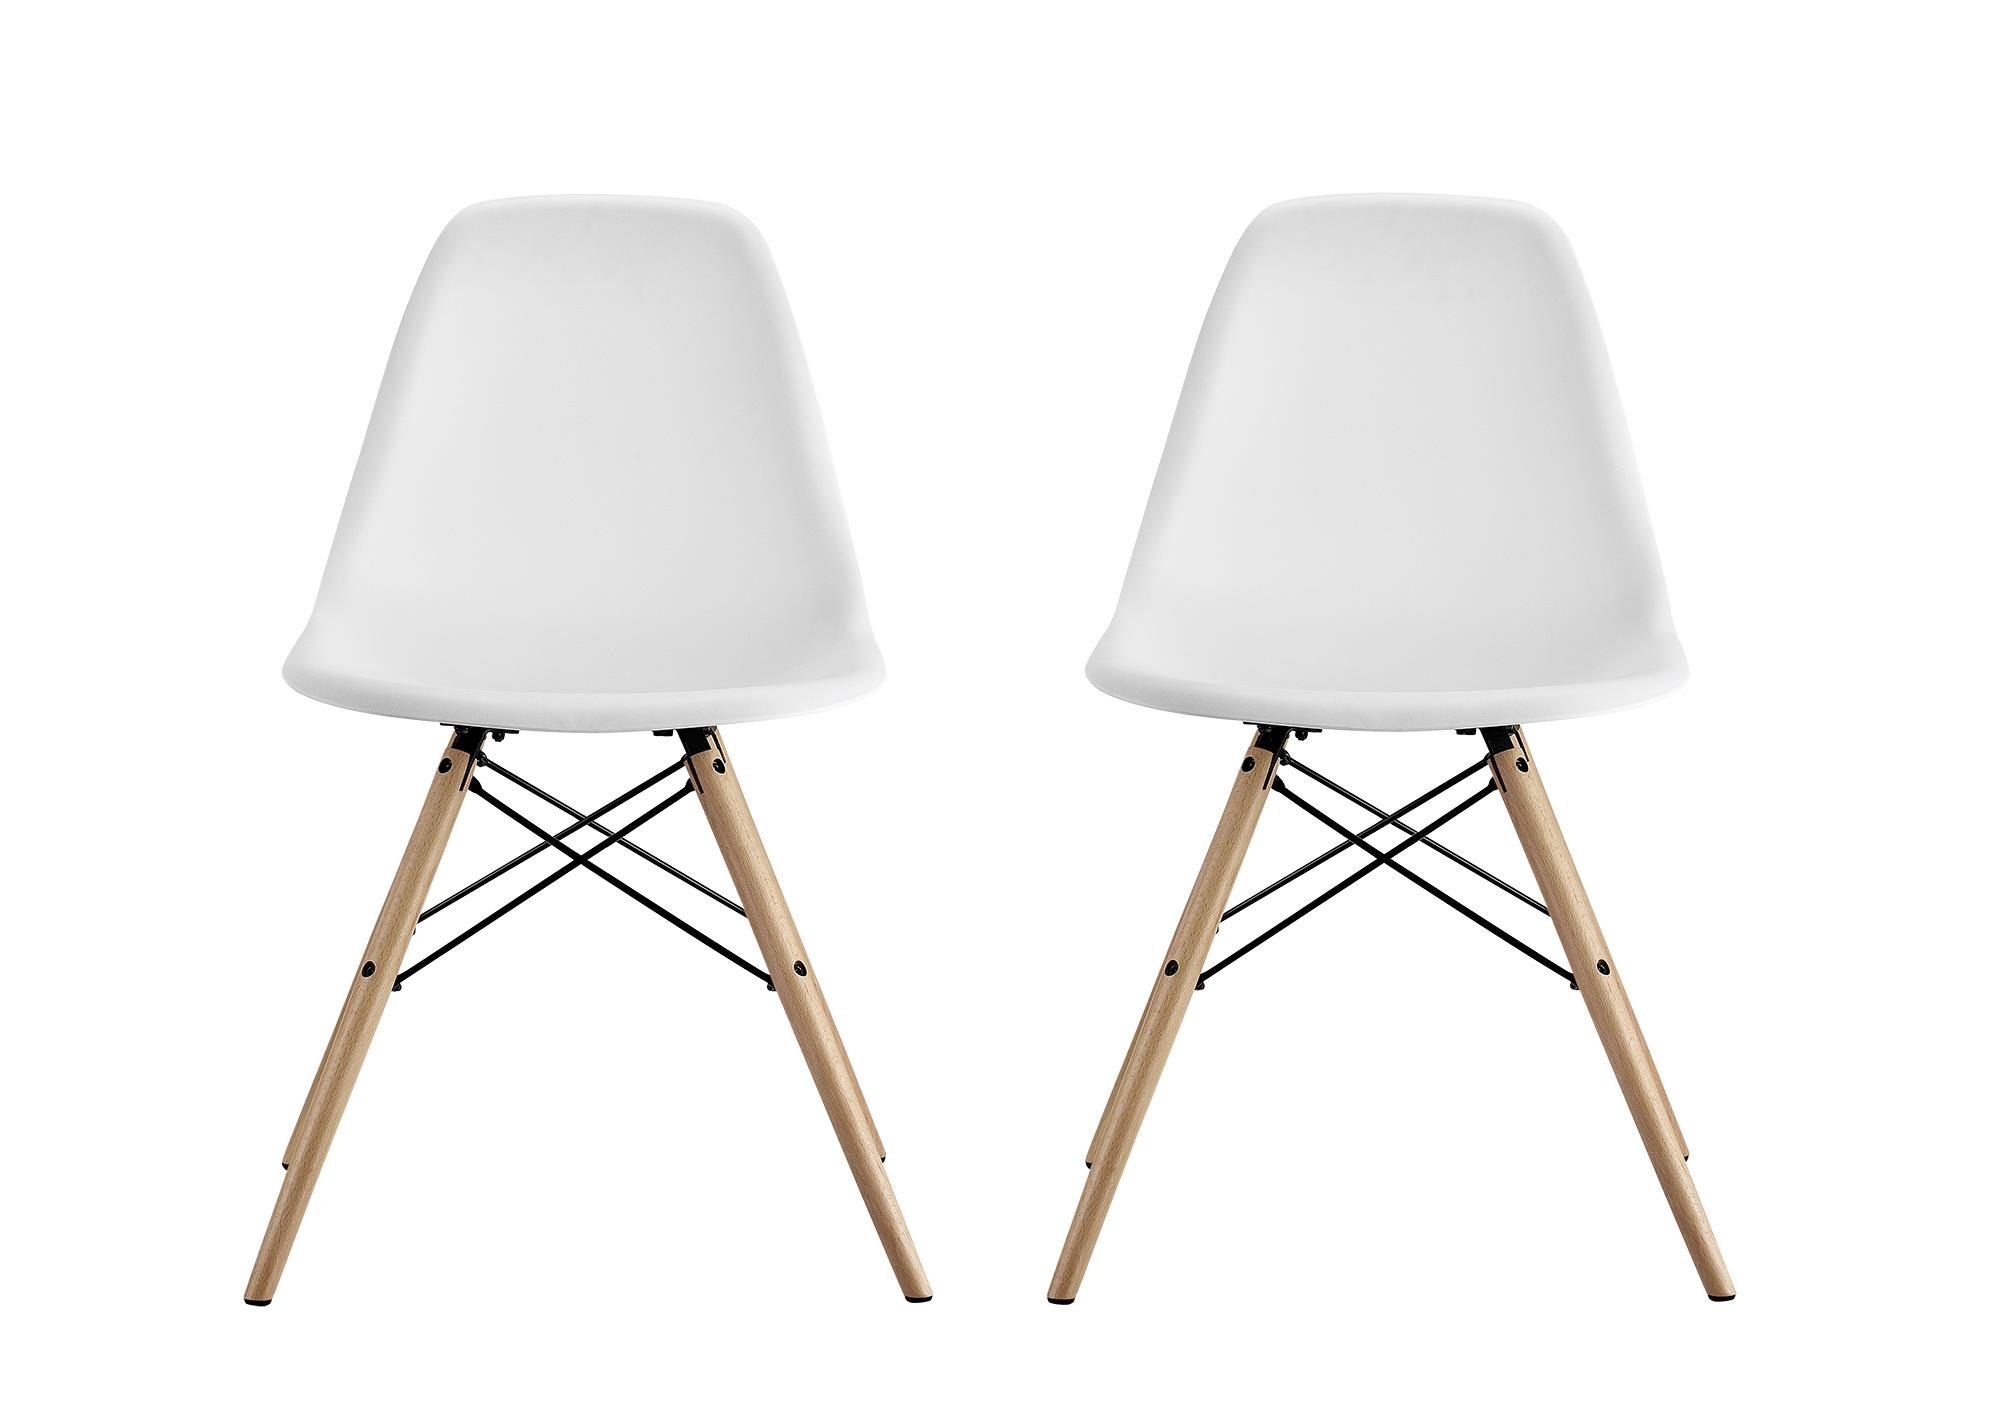 DHP Mid Century Modern Chairs with Wood Legs, White, Set of 2 by DHP